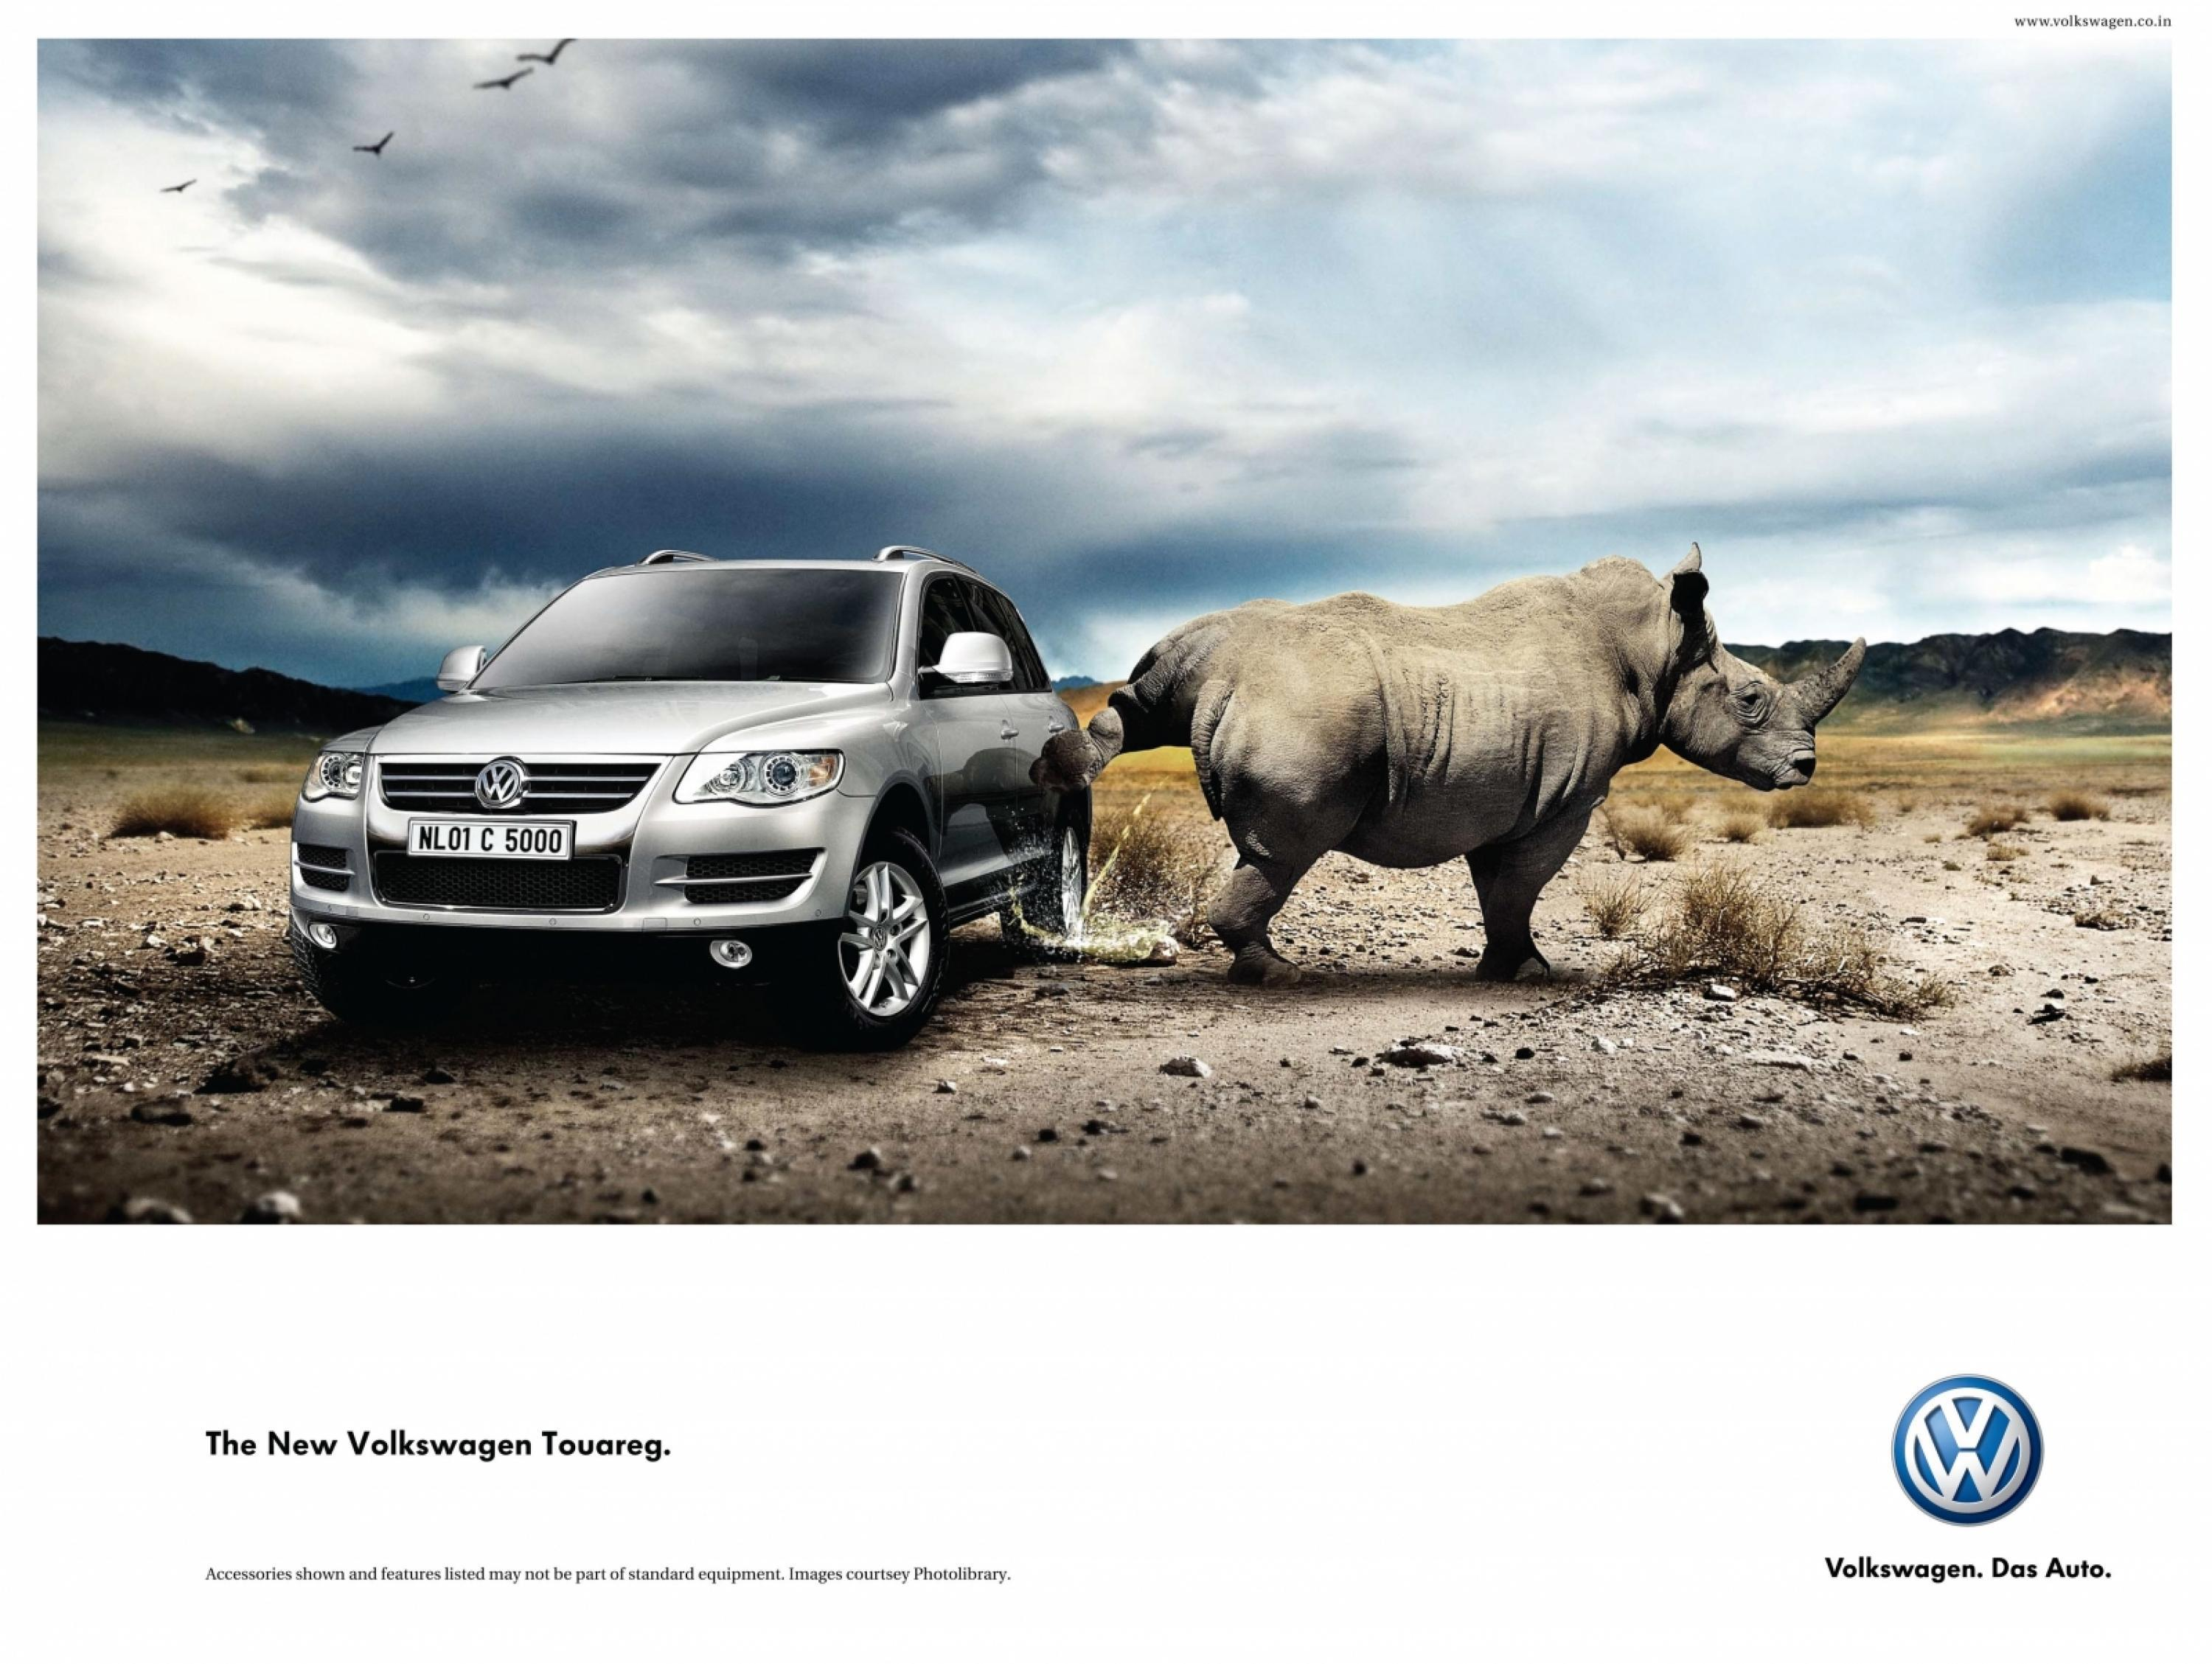 Adeevee | Only selected creativity - Volkswagen India Vw